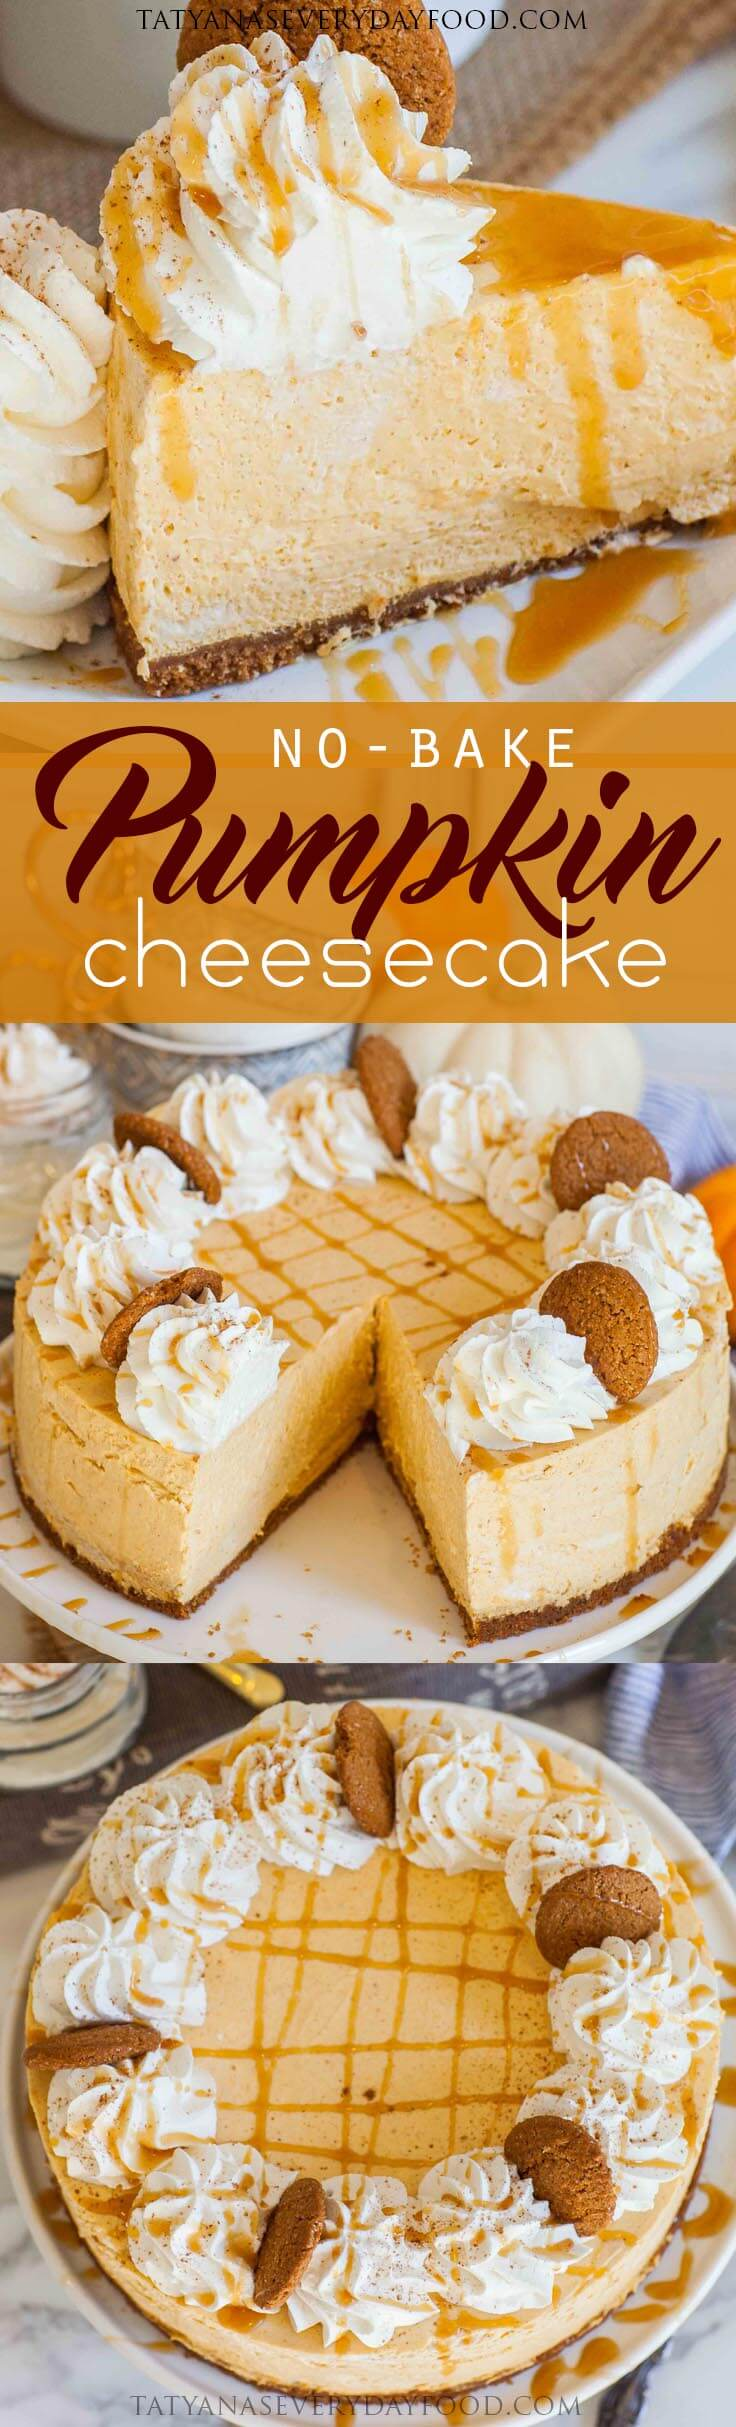 No Bake Pumpkin Cheesecake for Thanksgiving with video recipe